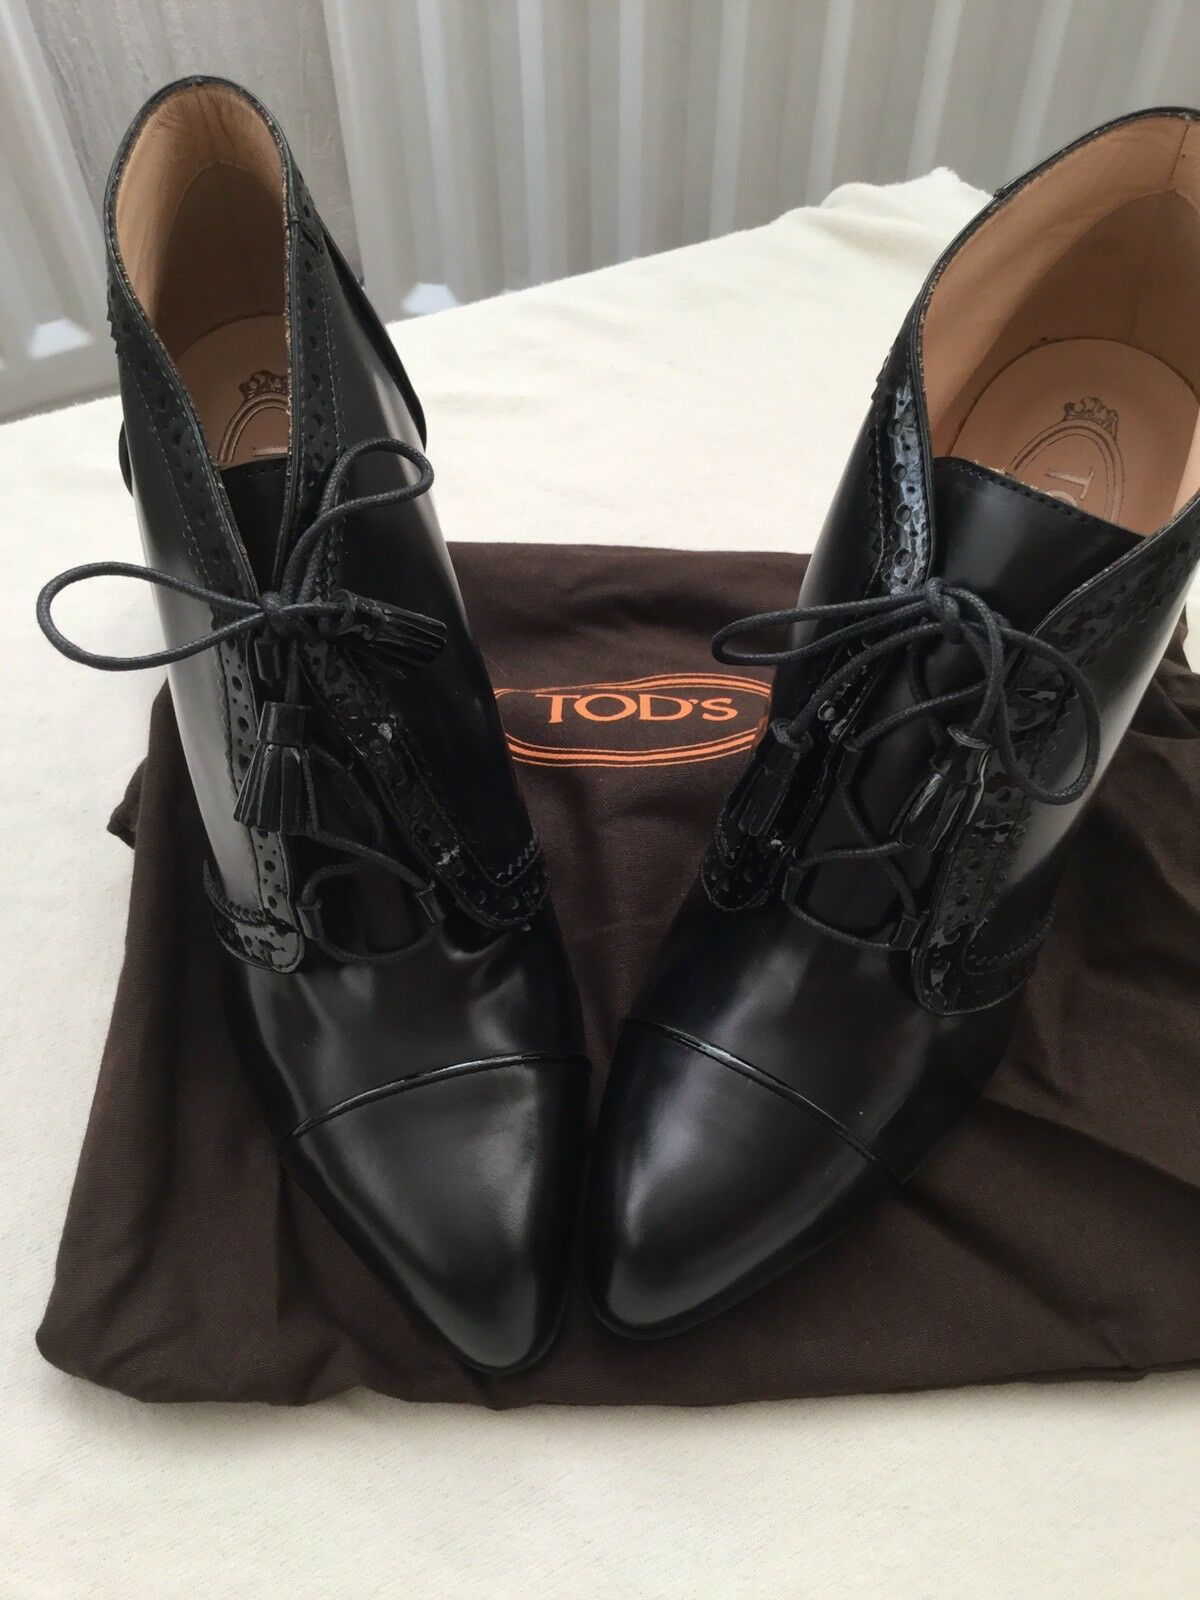 Tod's Boots Black Leather Boot  size UK 7,EU40